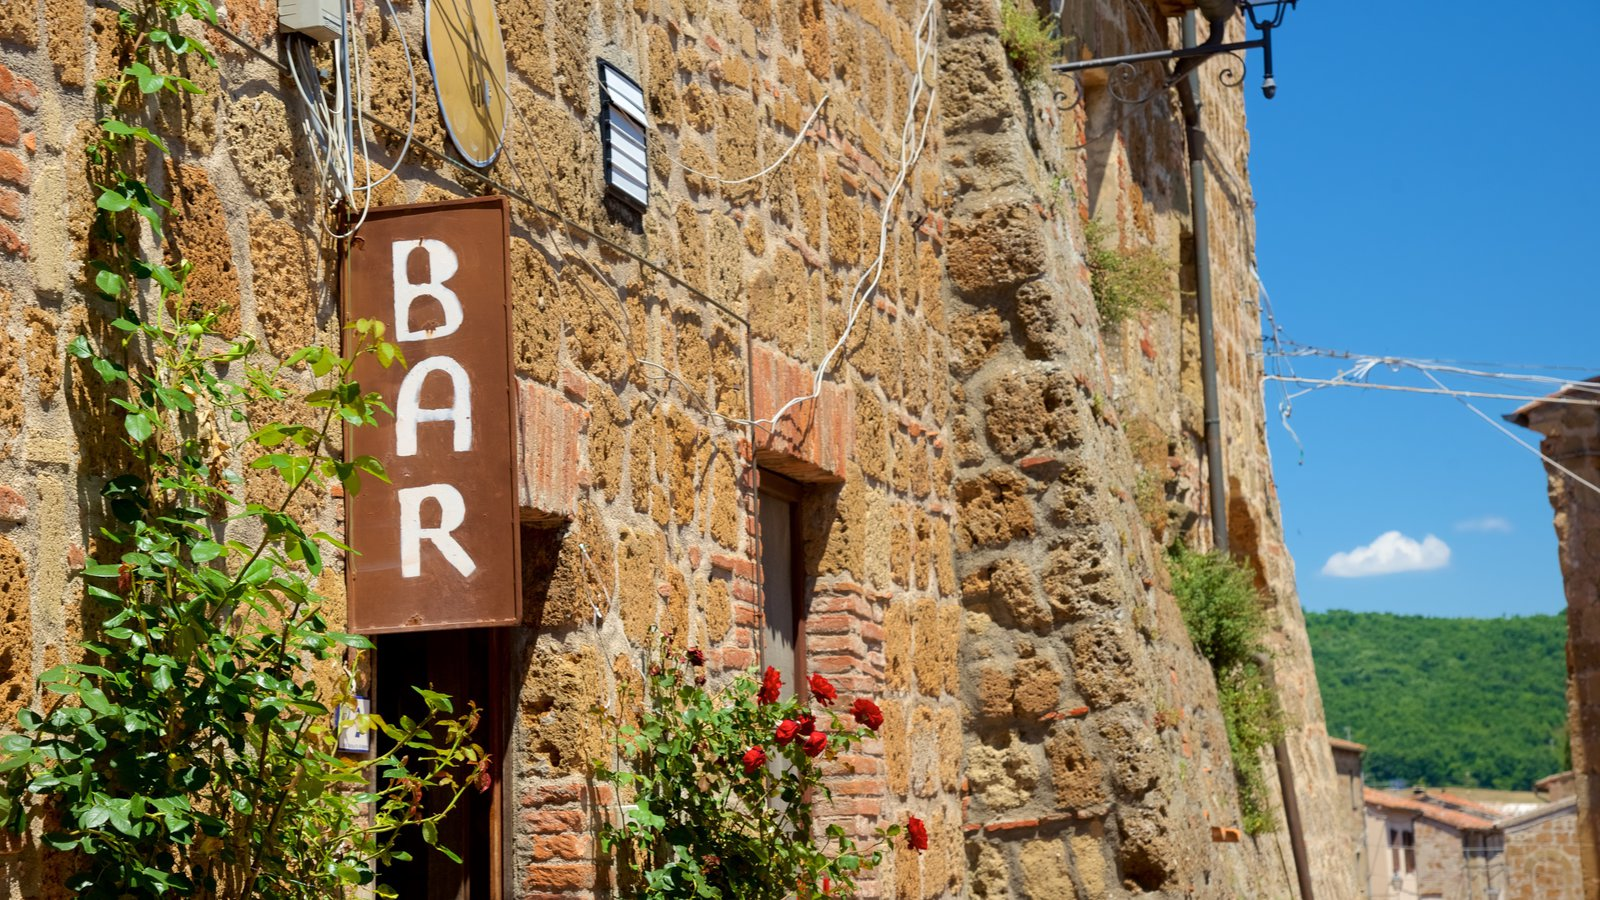 Sovana featuring heritage architecture and signage